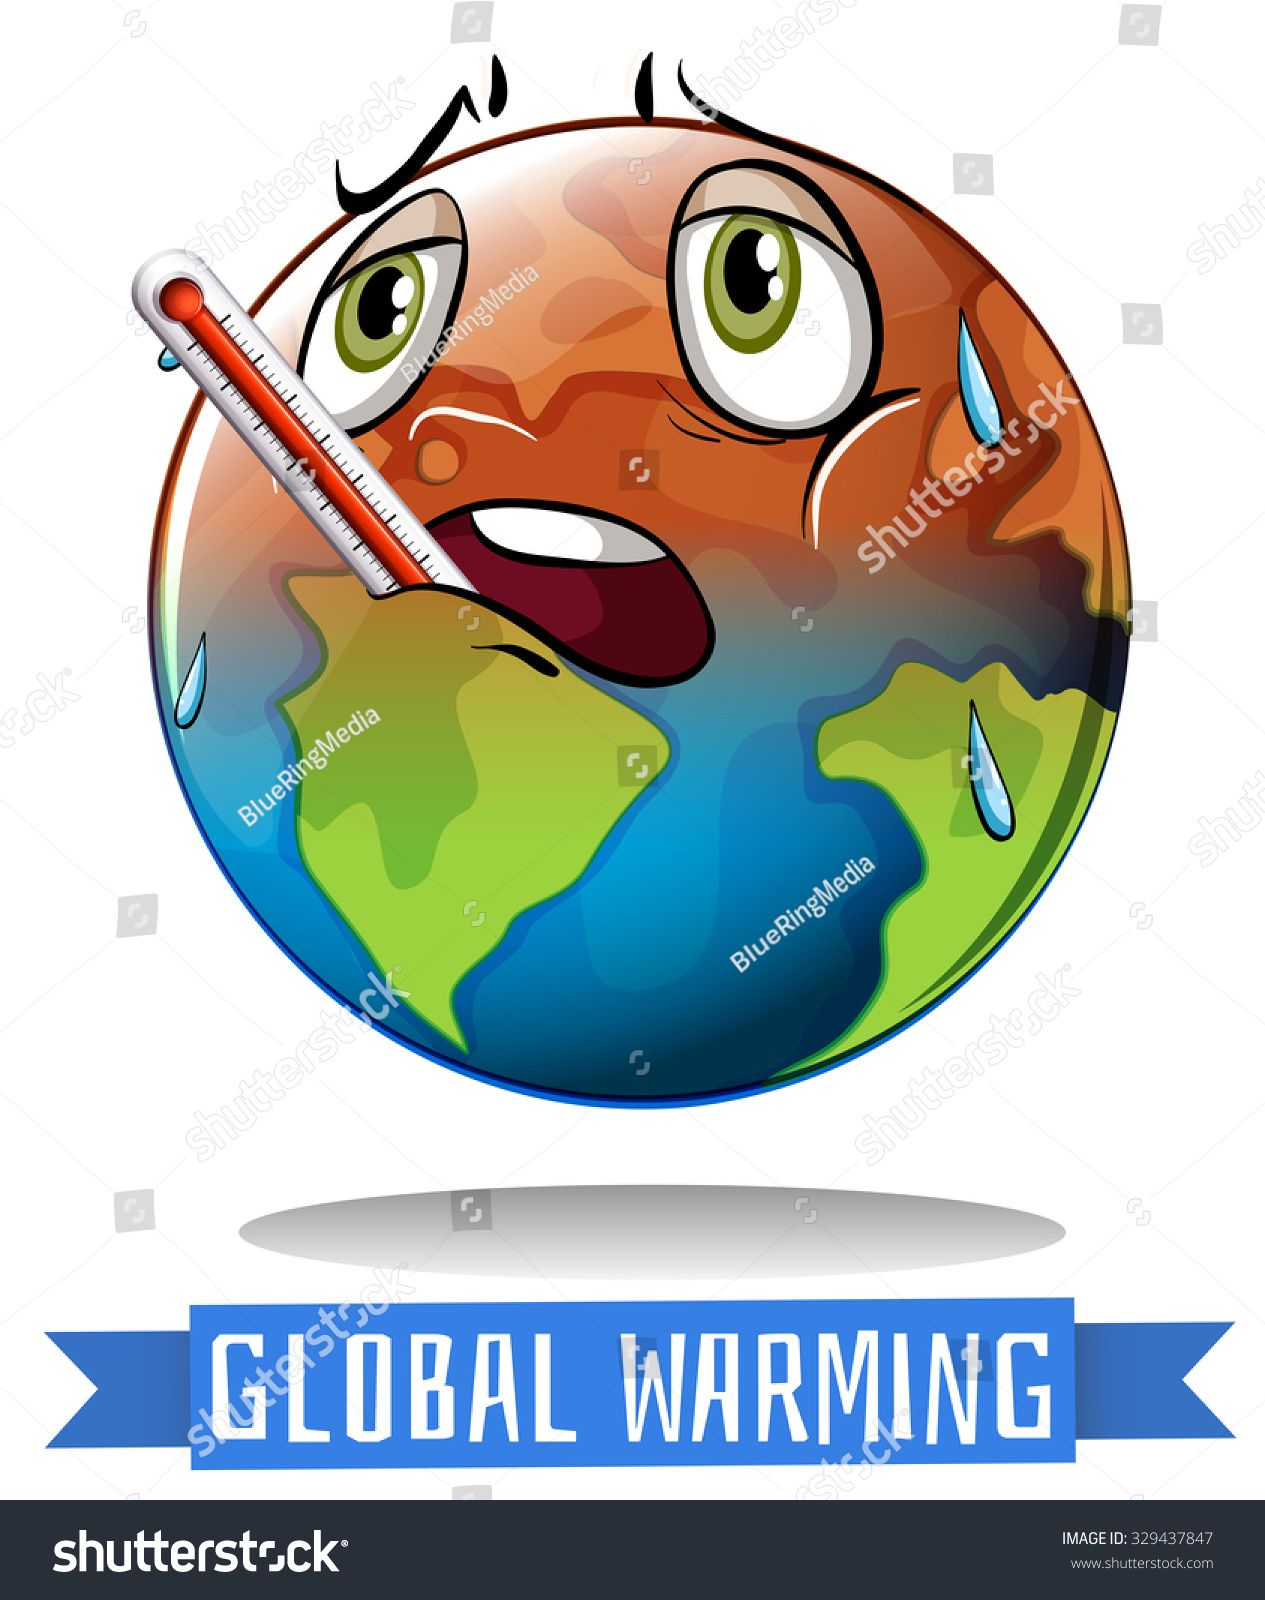 Global Warming Sign With Earth Melting Illustration Ad Sponsored Sign Warming Global Illustra Global Warming Drawing Global Warming Global Warming Poster [ 1600 x 1265 Pixel ]